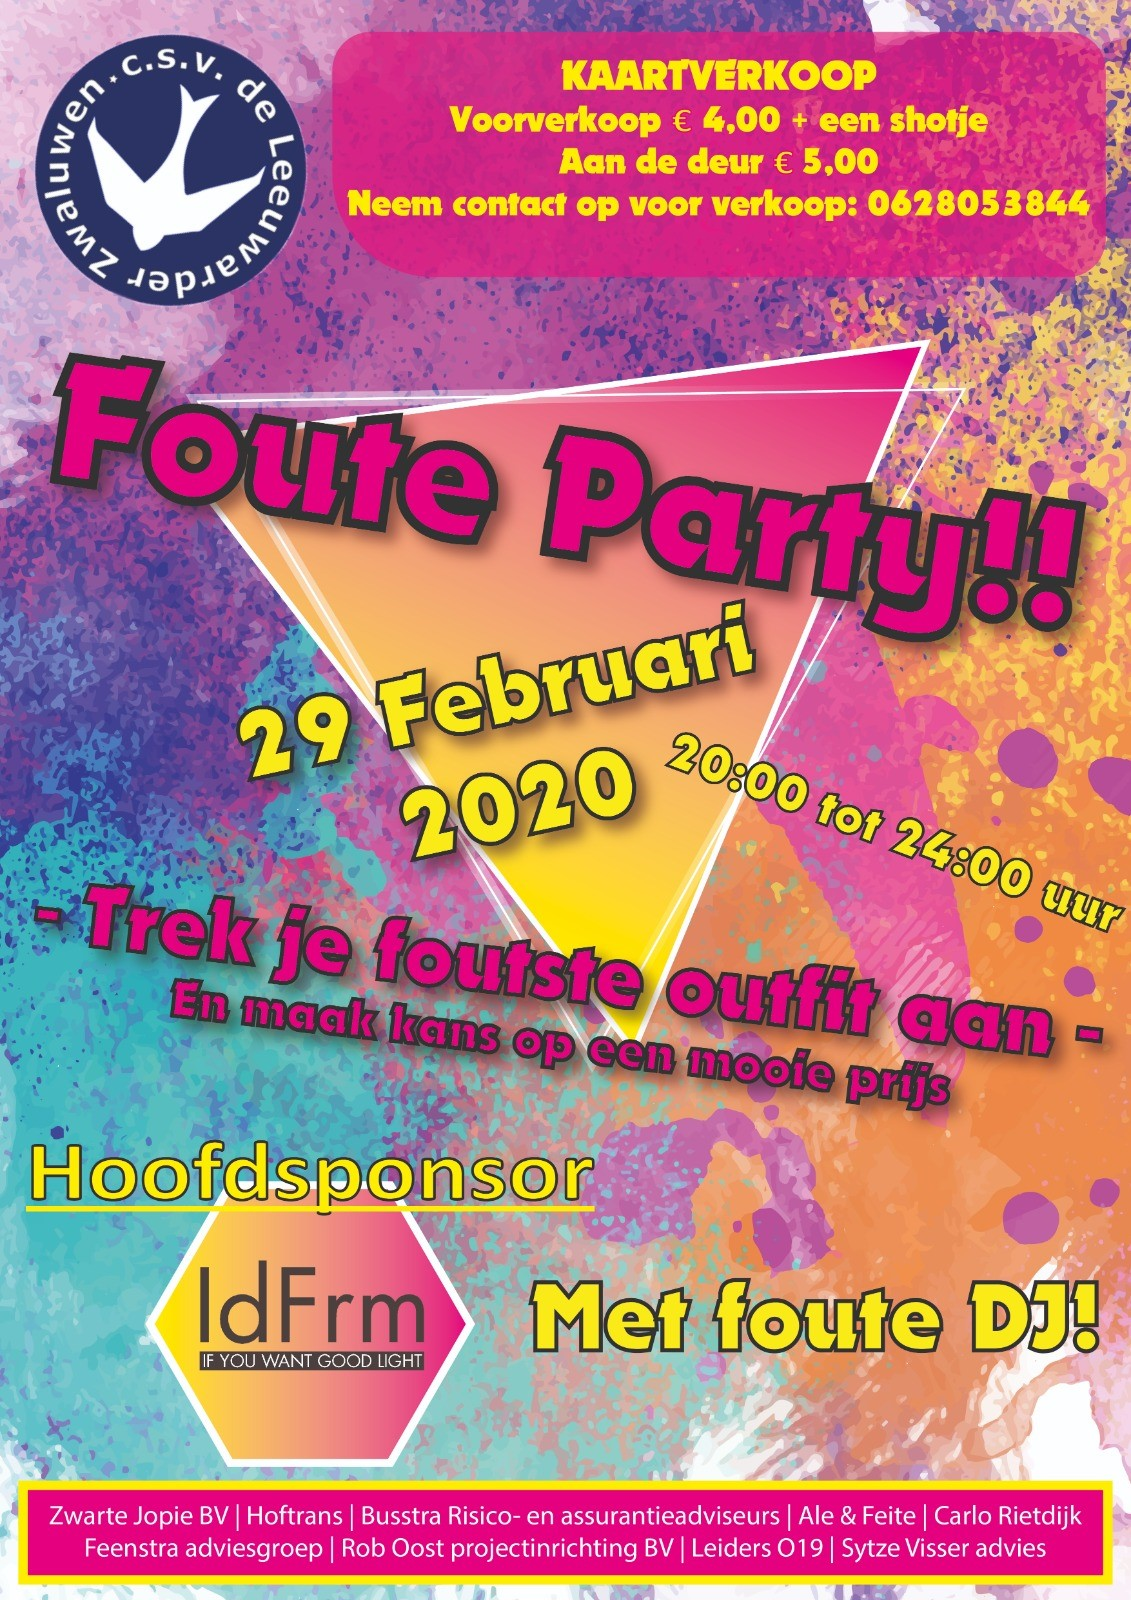 Foute Party @ 't Zwaluwennest